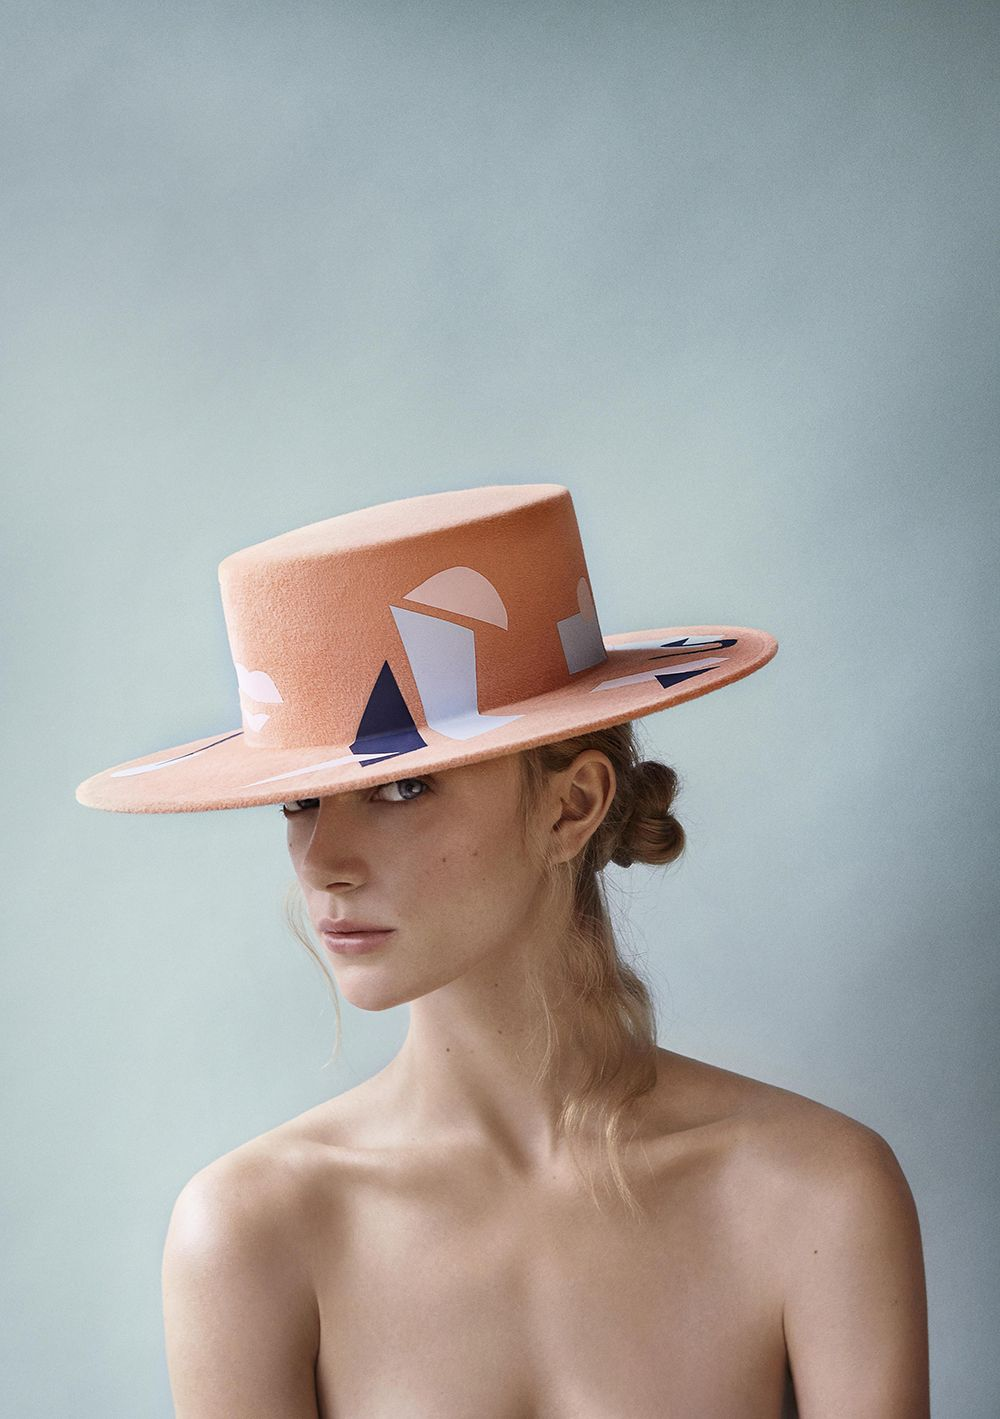 British milliner Laura Apsit Livens Fashion Design 80cd80b5dab2